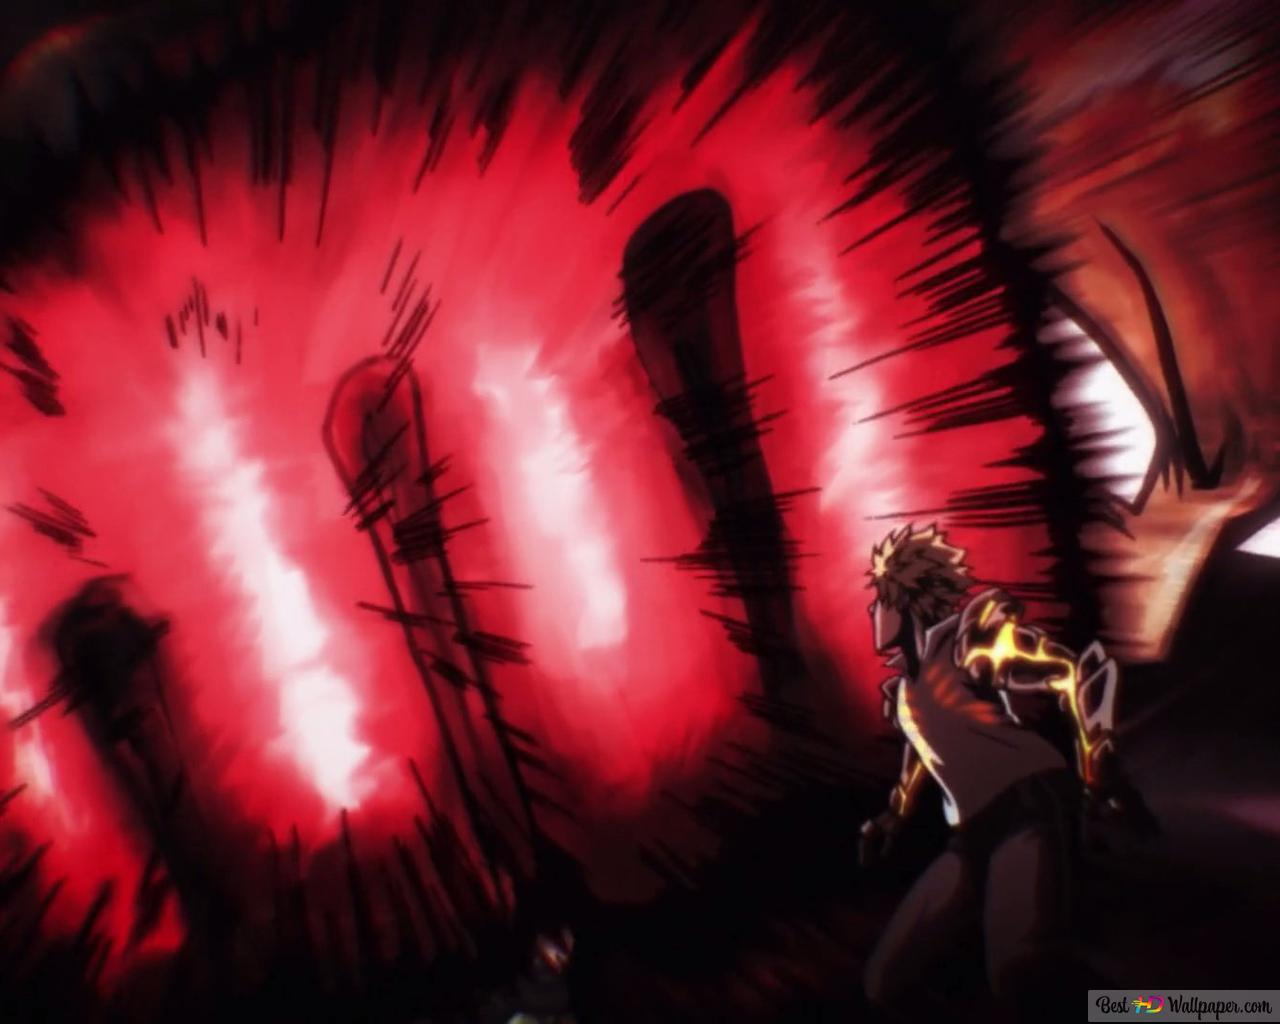 One Punch Man Genos Saitama Death Punch Hd Wallpaper Download